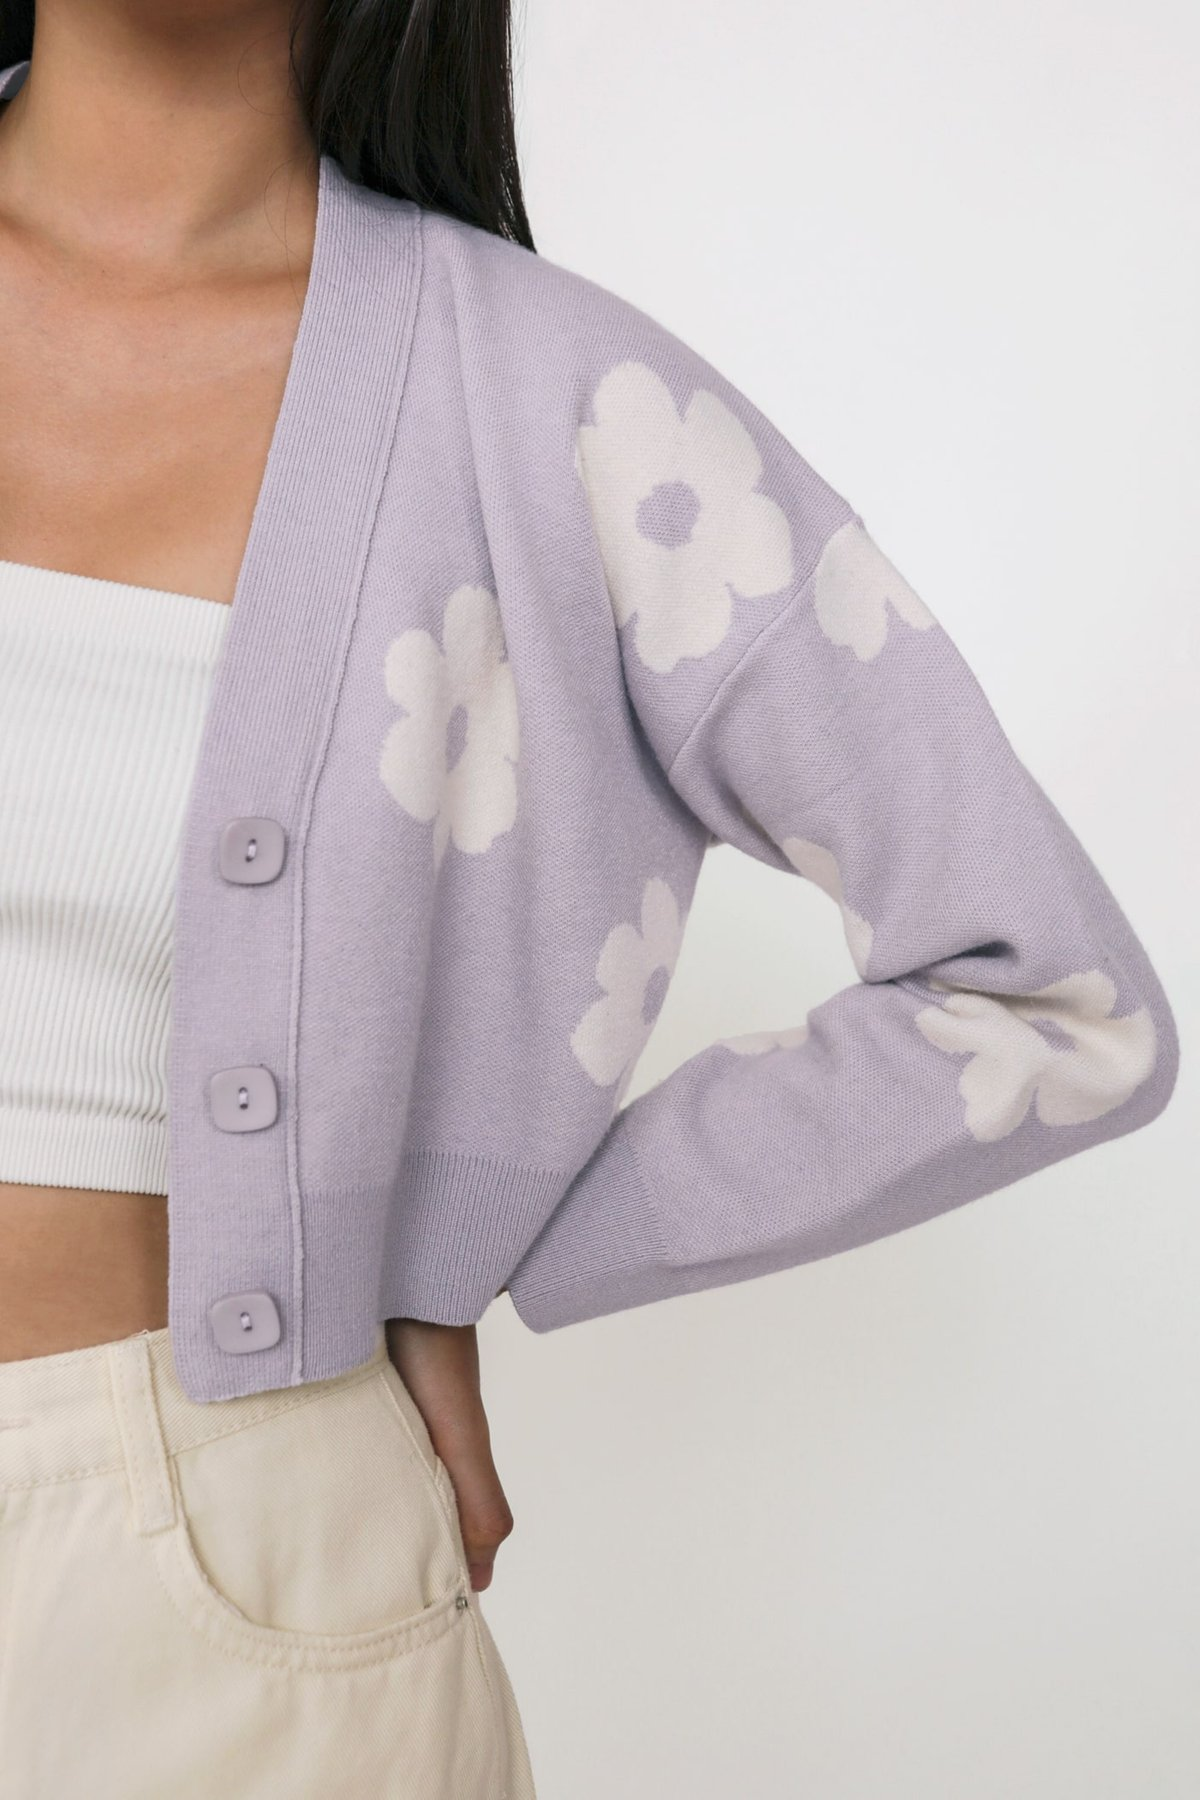 #1- Euphoria Knit Cardigan (Lilac Florals) Limited Edition